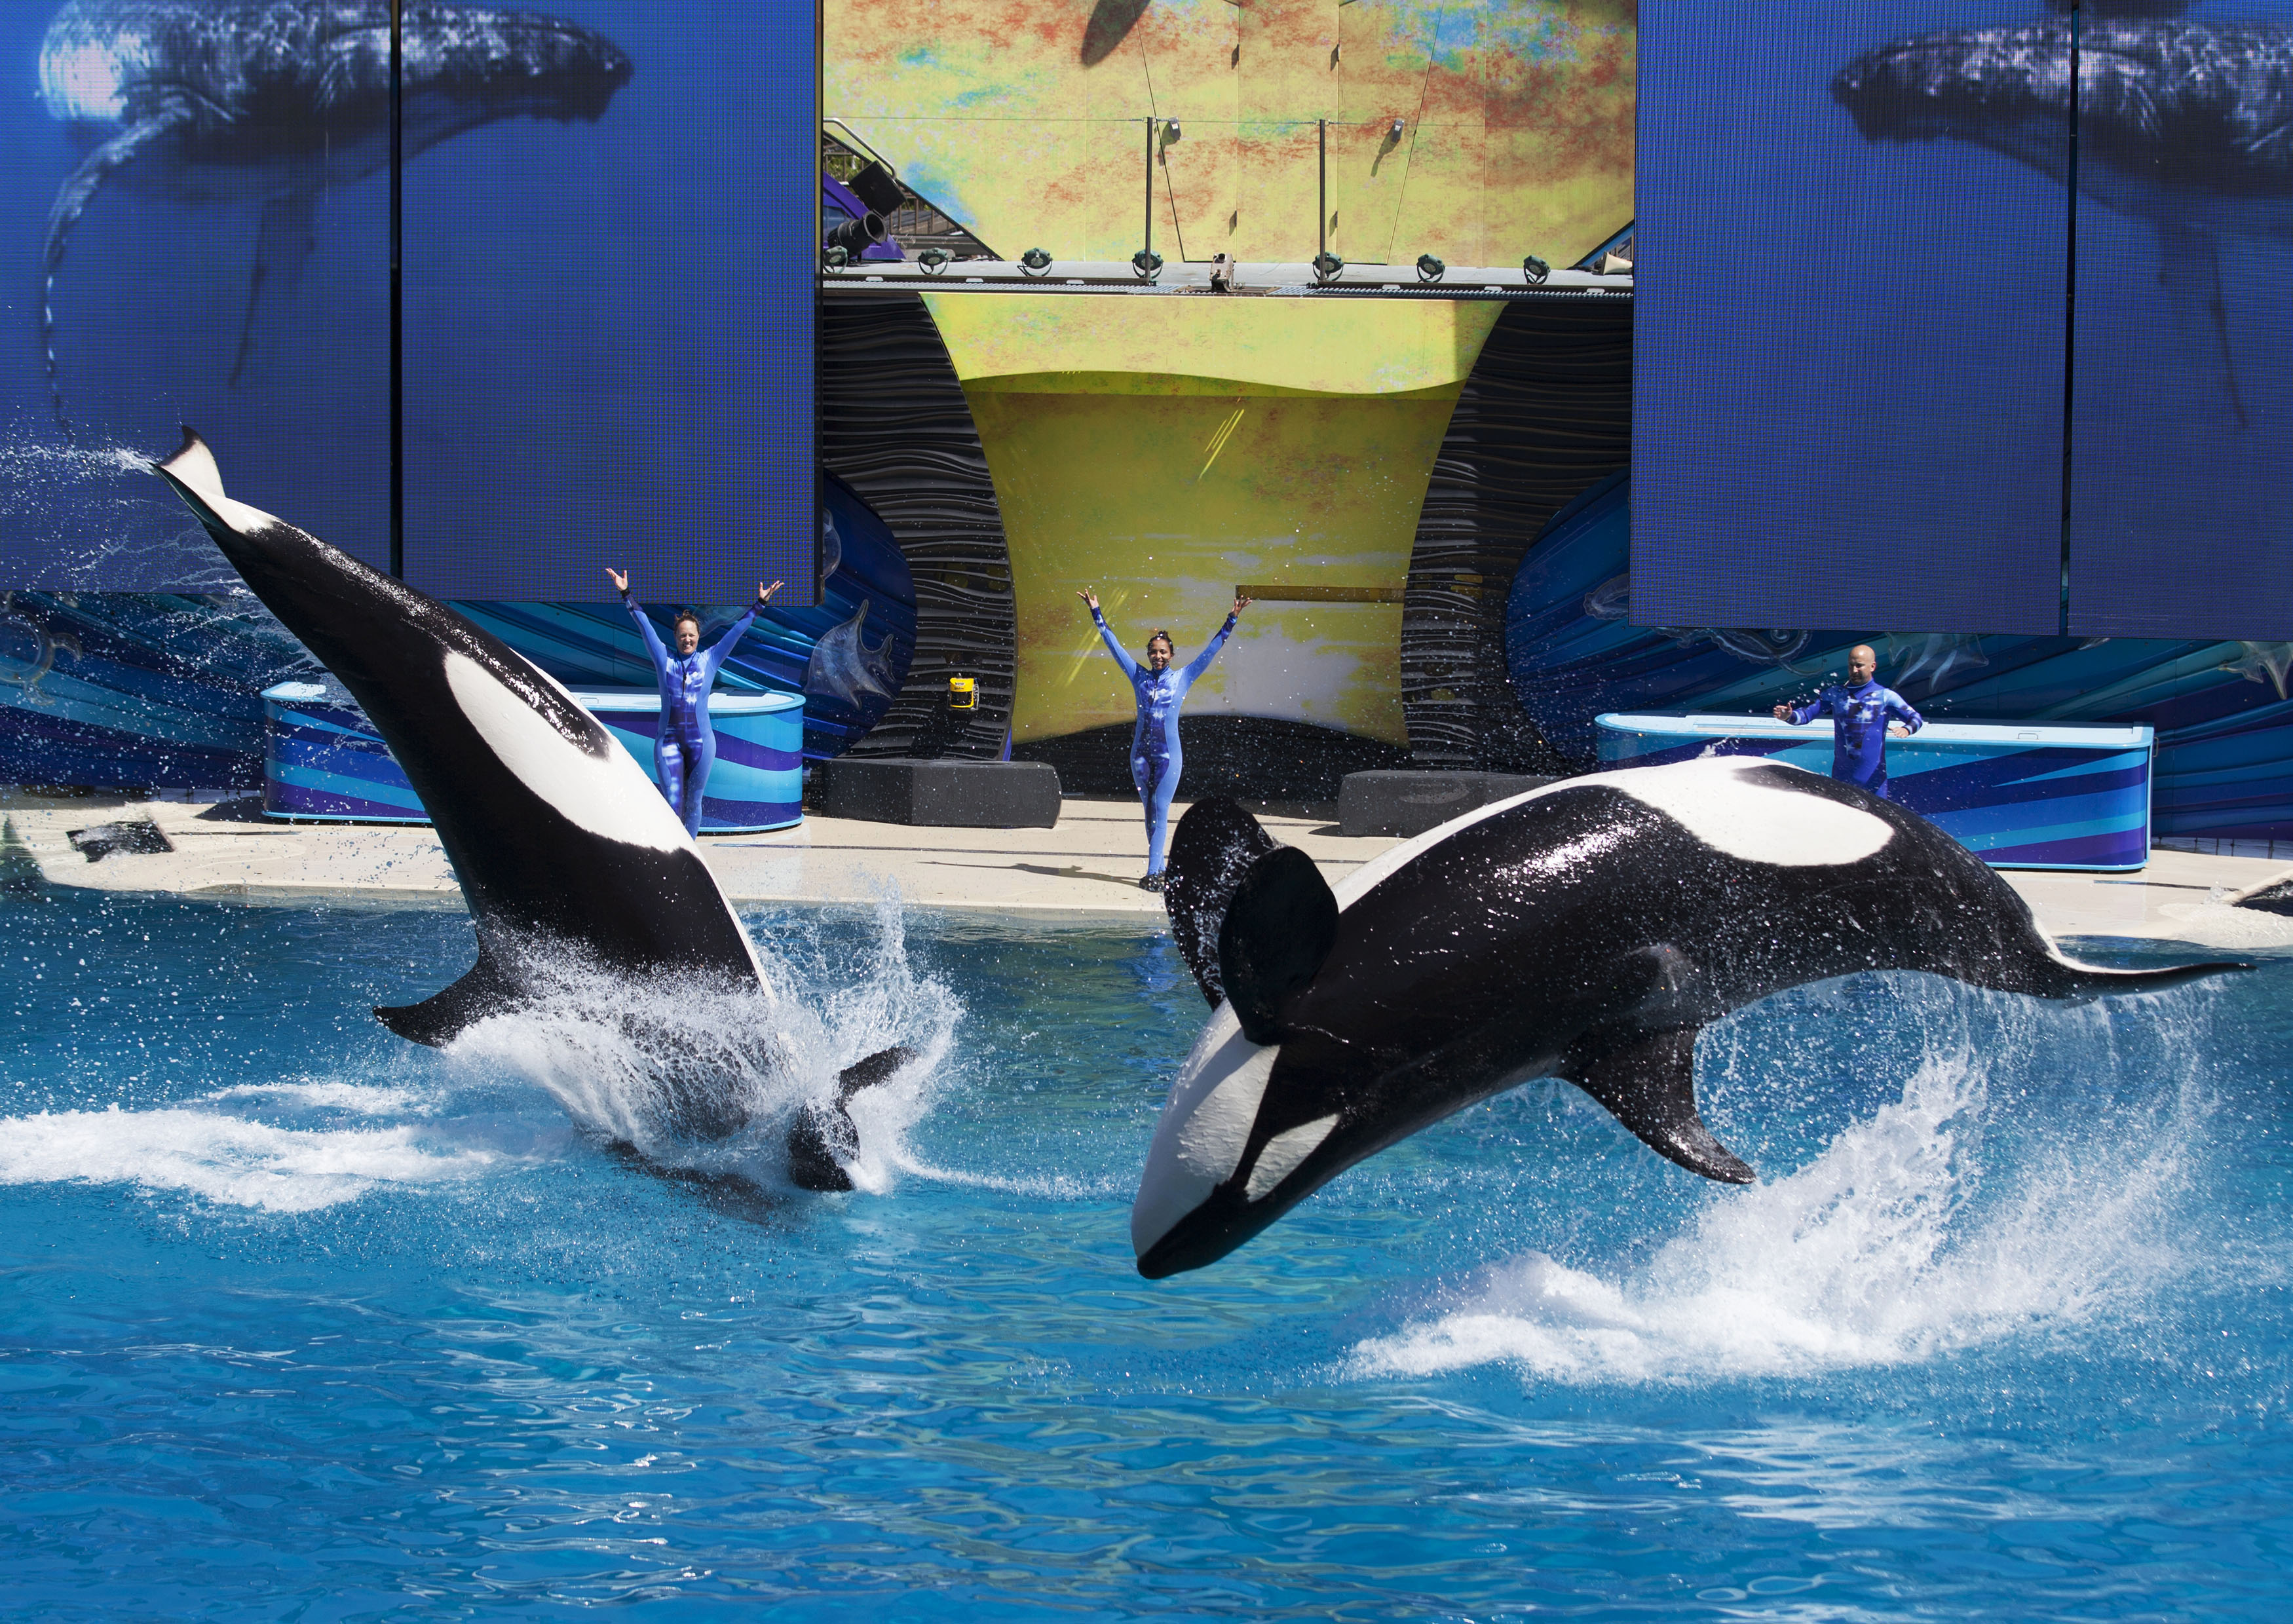 Trainers have Orca killer whales perform for the crowd  during a show at the animal theme park SeaWorld in San Diego, on March 19, 2014.